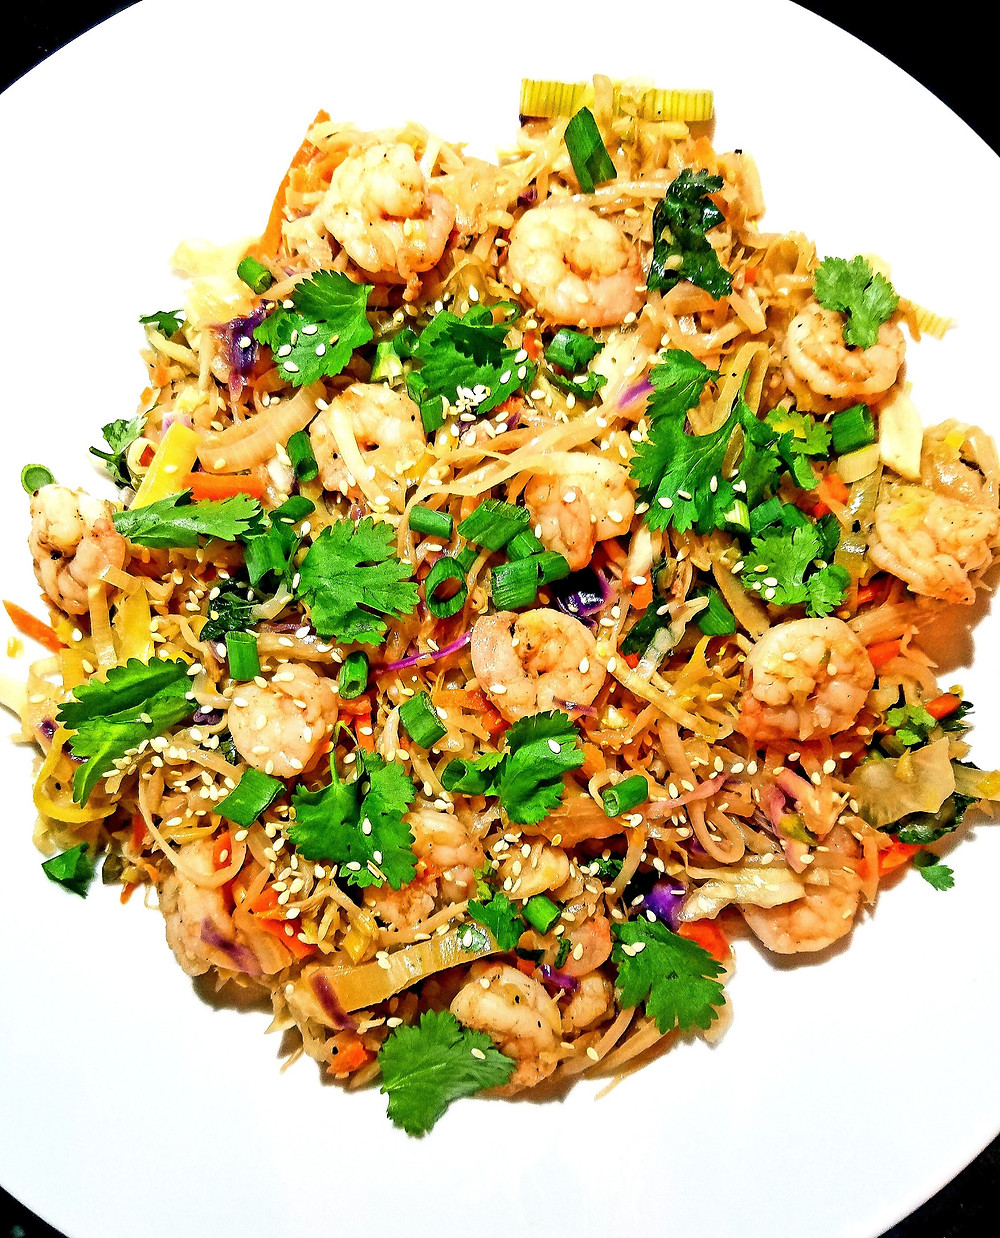 Shrimp Egg Roll in a Bowl (Gluten-free, no grains, dairy, soy)